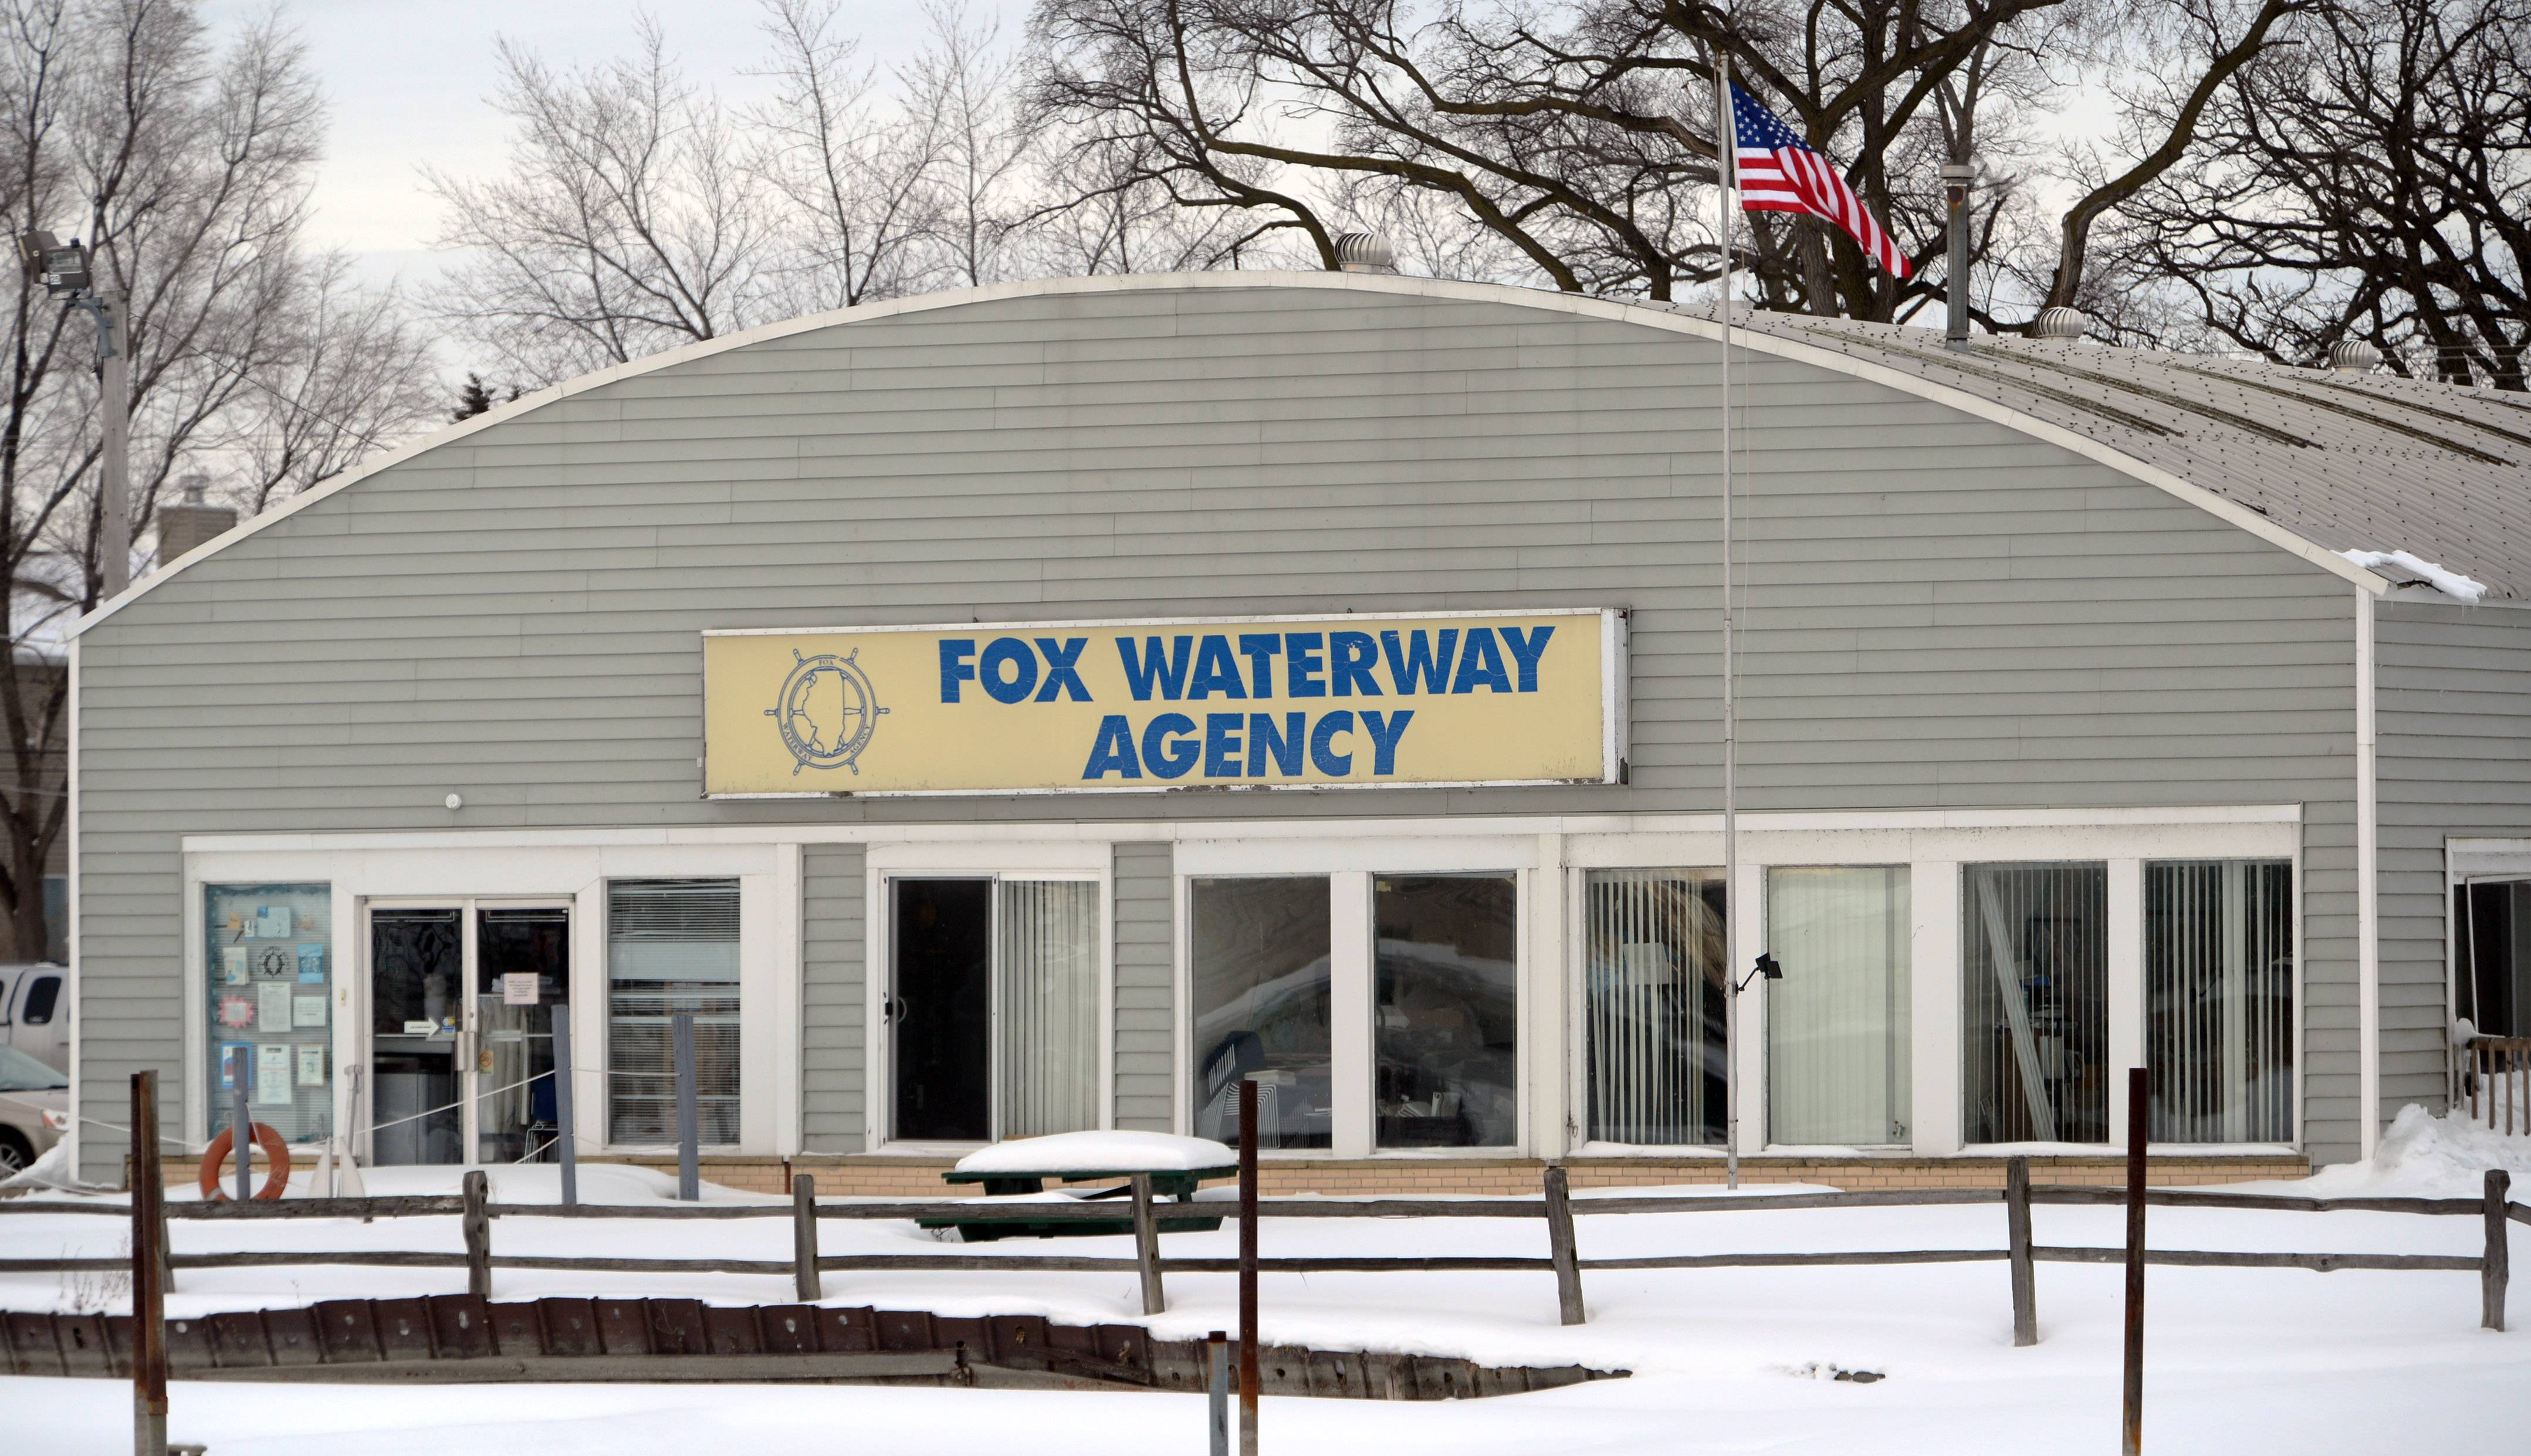 Lake County lawmakers want to dissolve Fox Waterway Agency